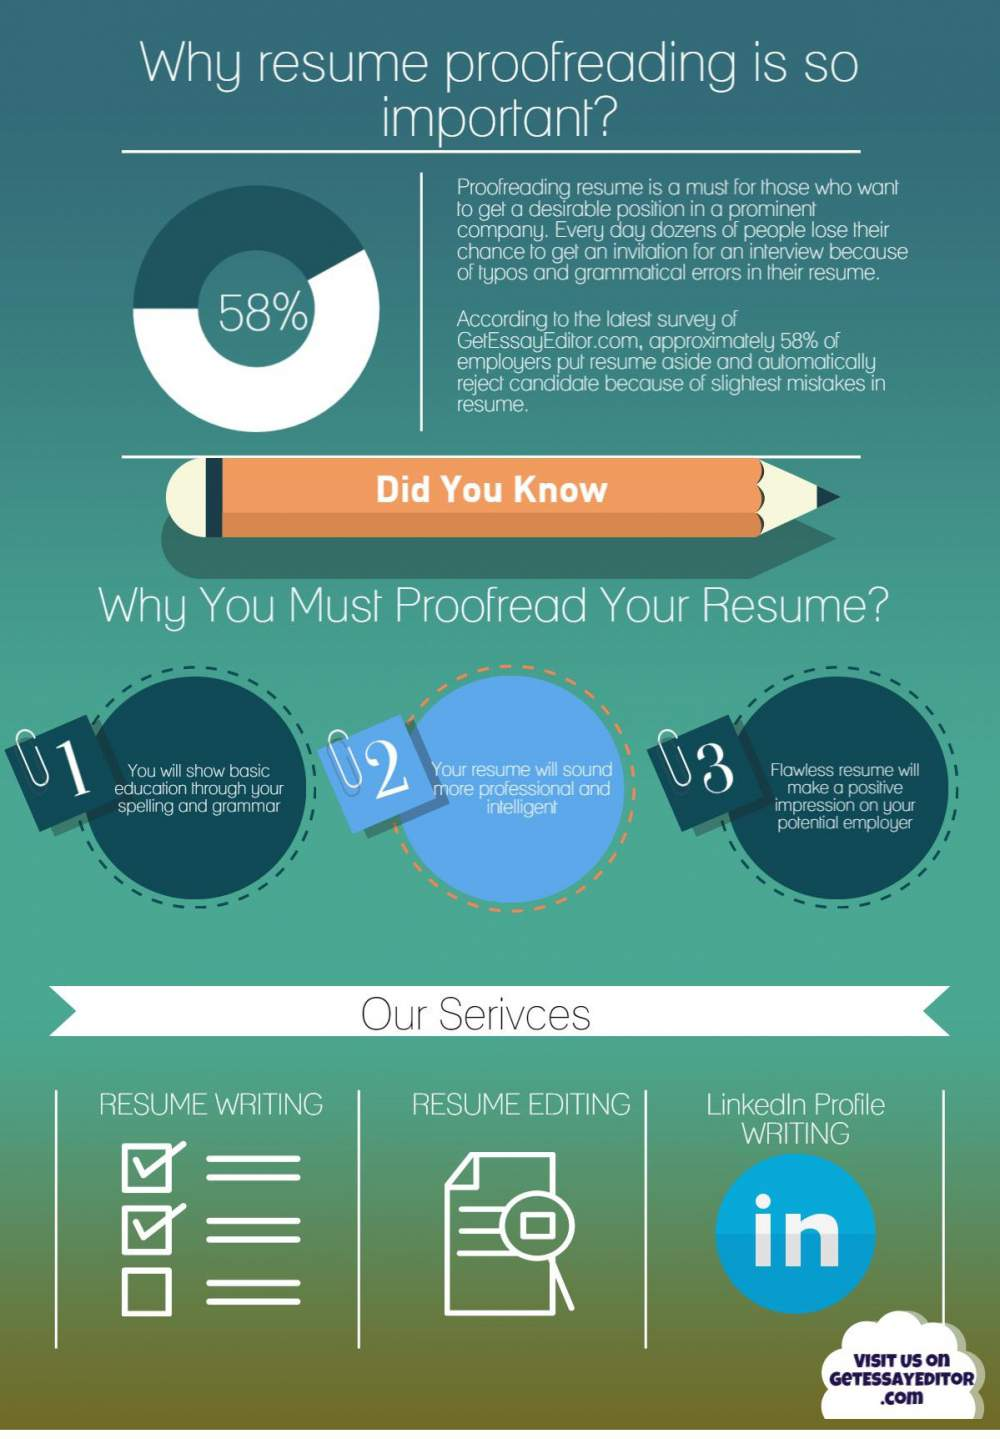 why resume proofreading is so important infographic portal